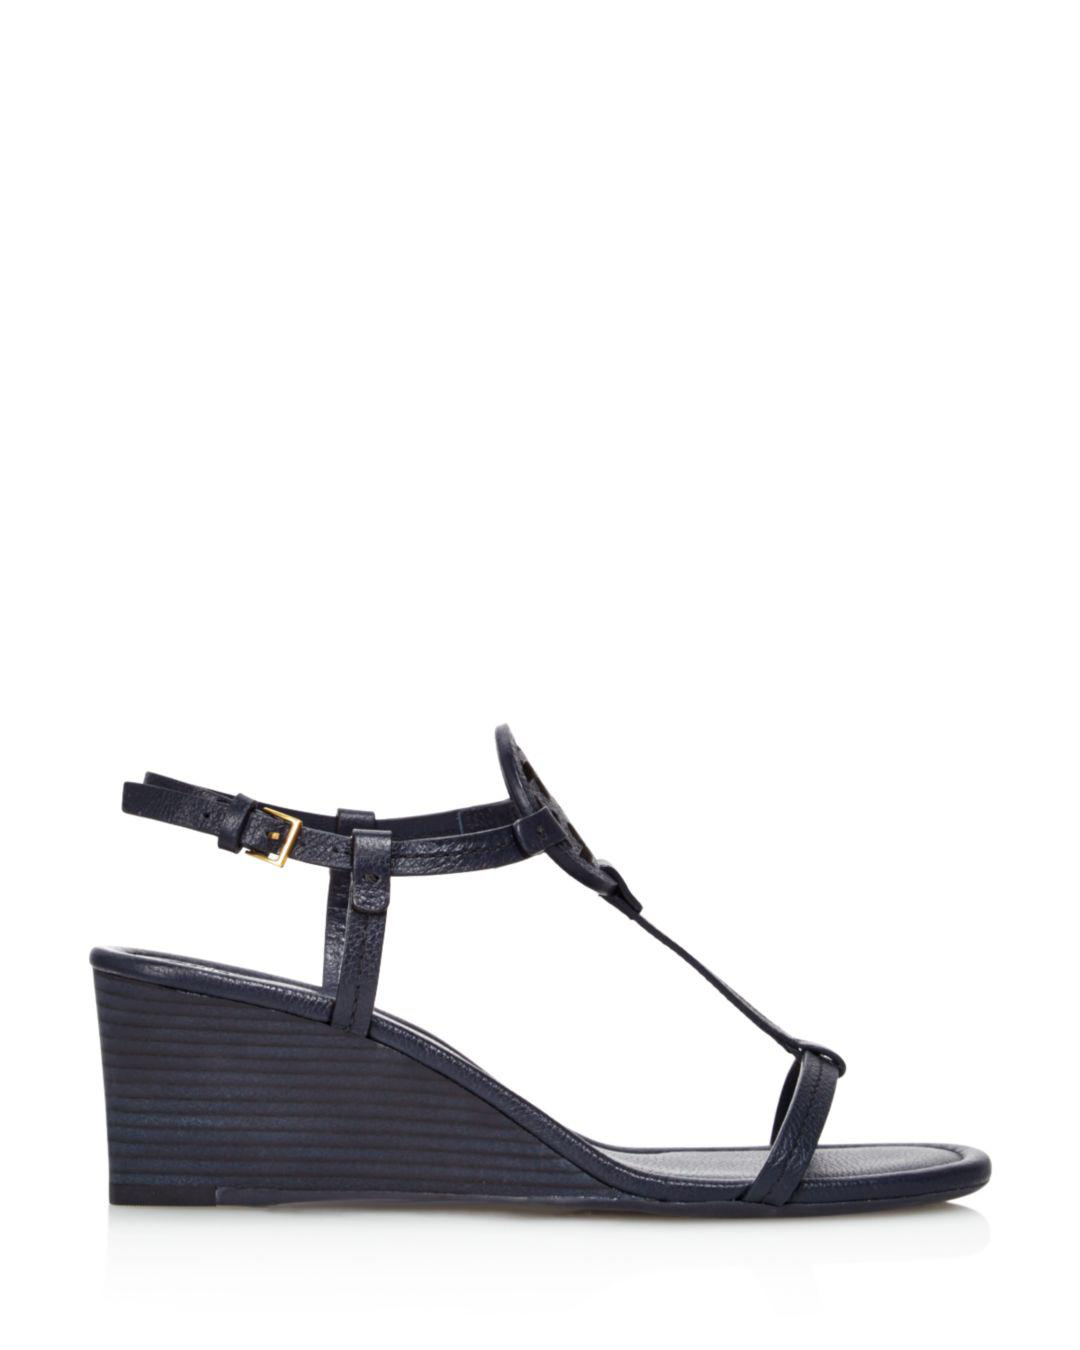 789dfc22d Lyst - Tory Burch Women s Miller Leather Wedge Sandals in Blue